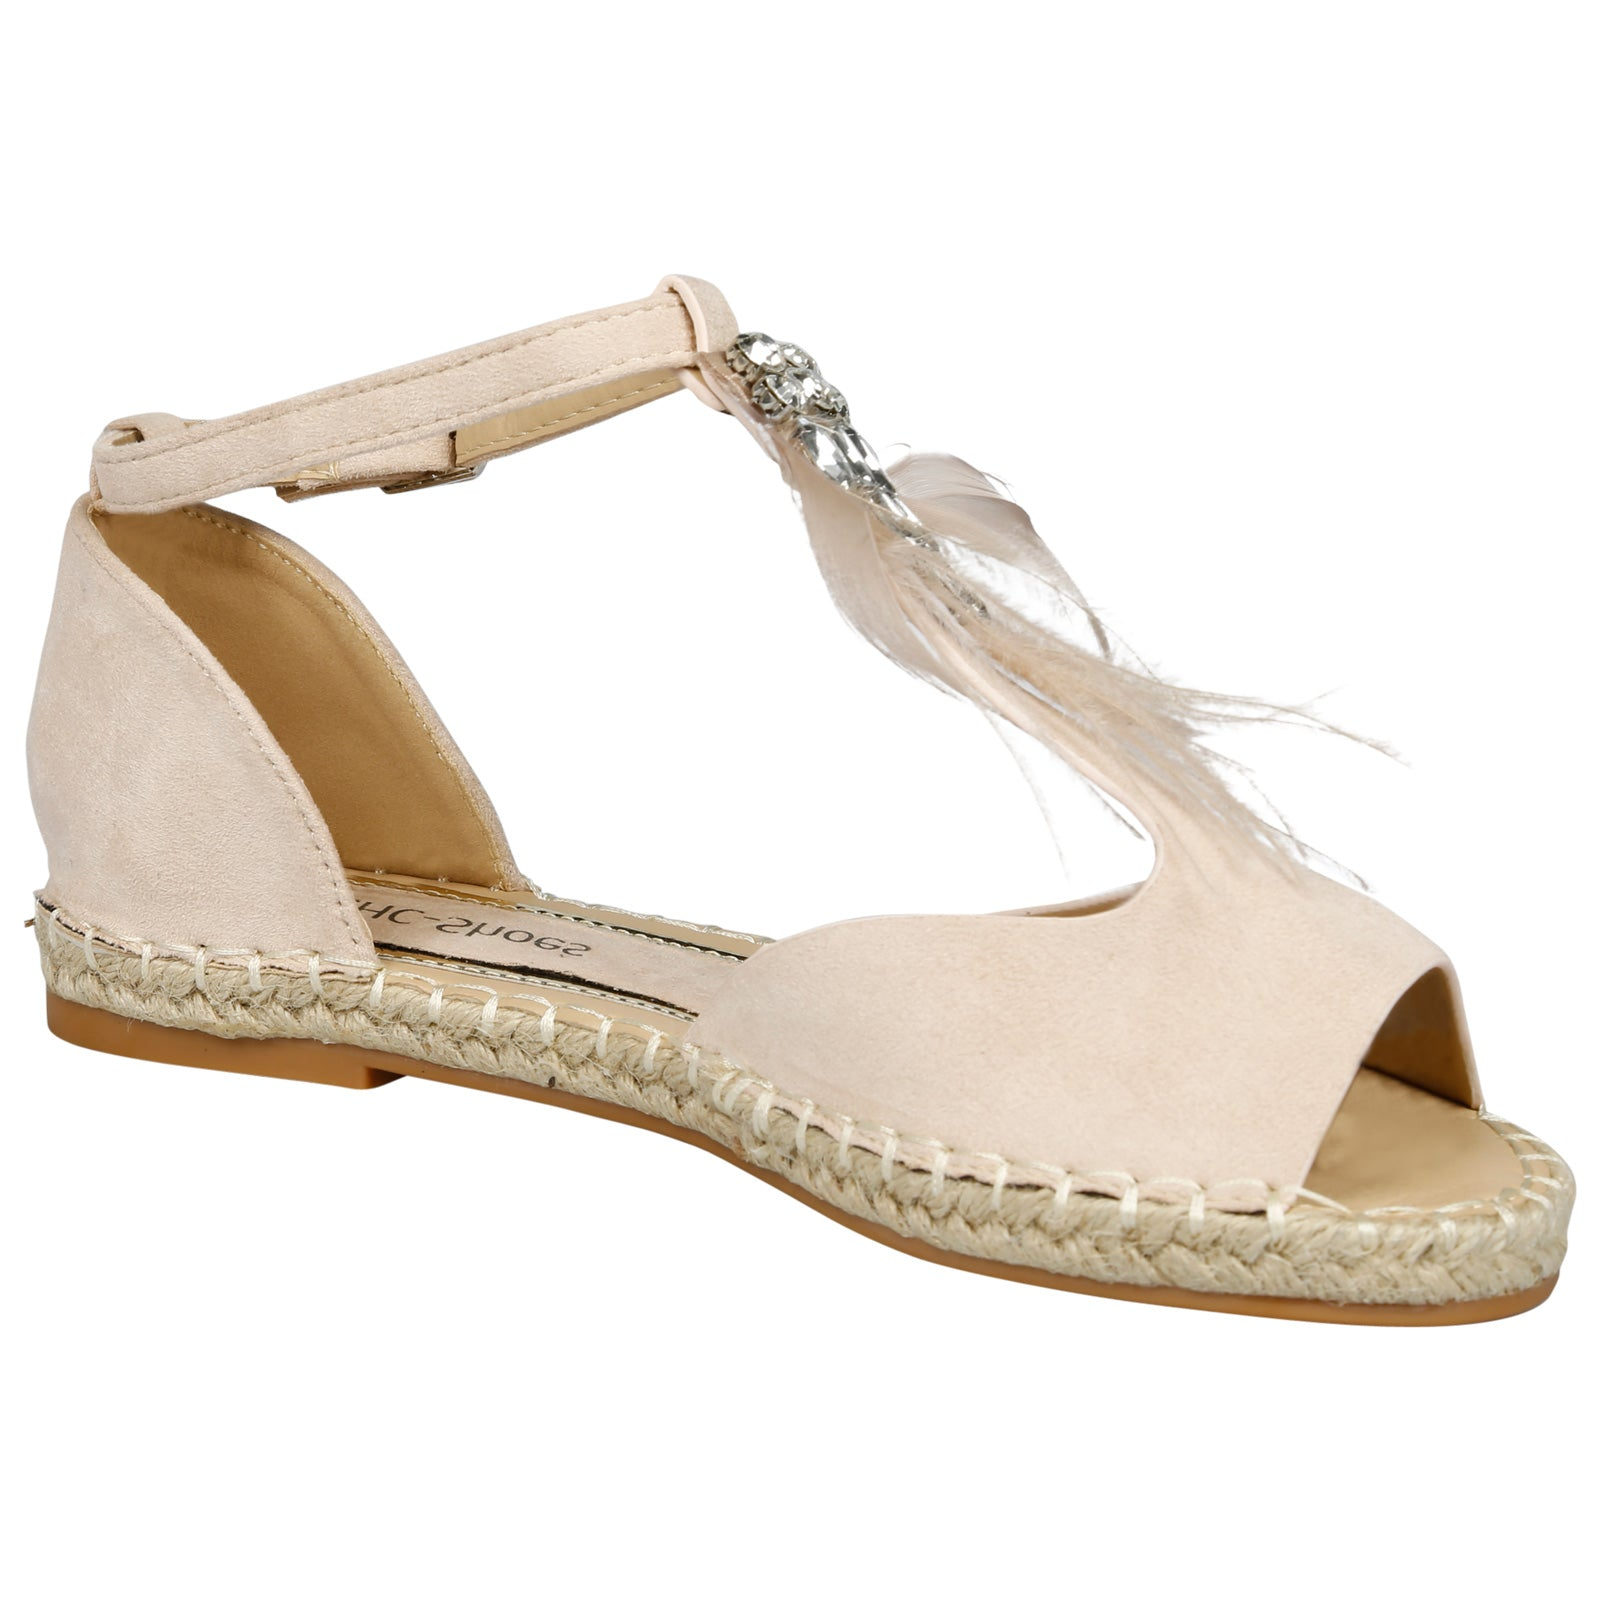 Gaia Feather T Bar Espadrille Sandals in Beige Faux Suede - Feet First Fashion